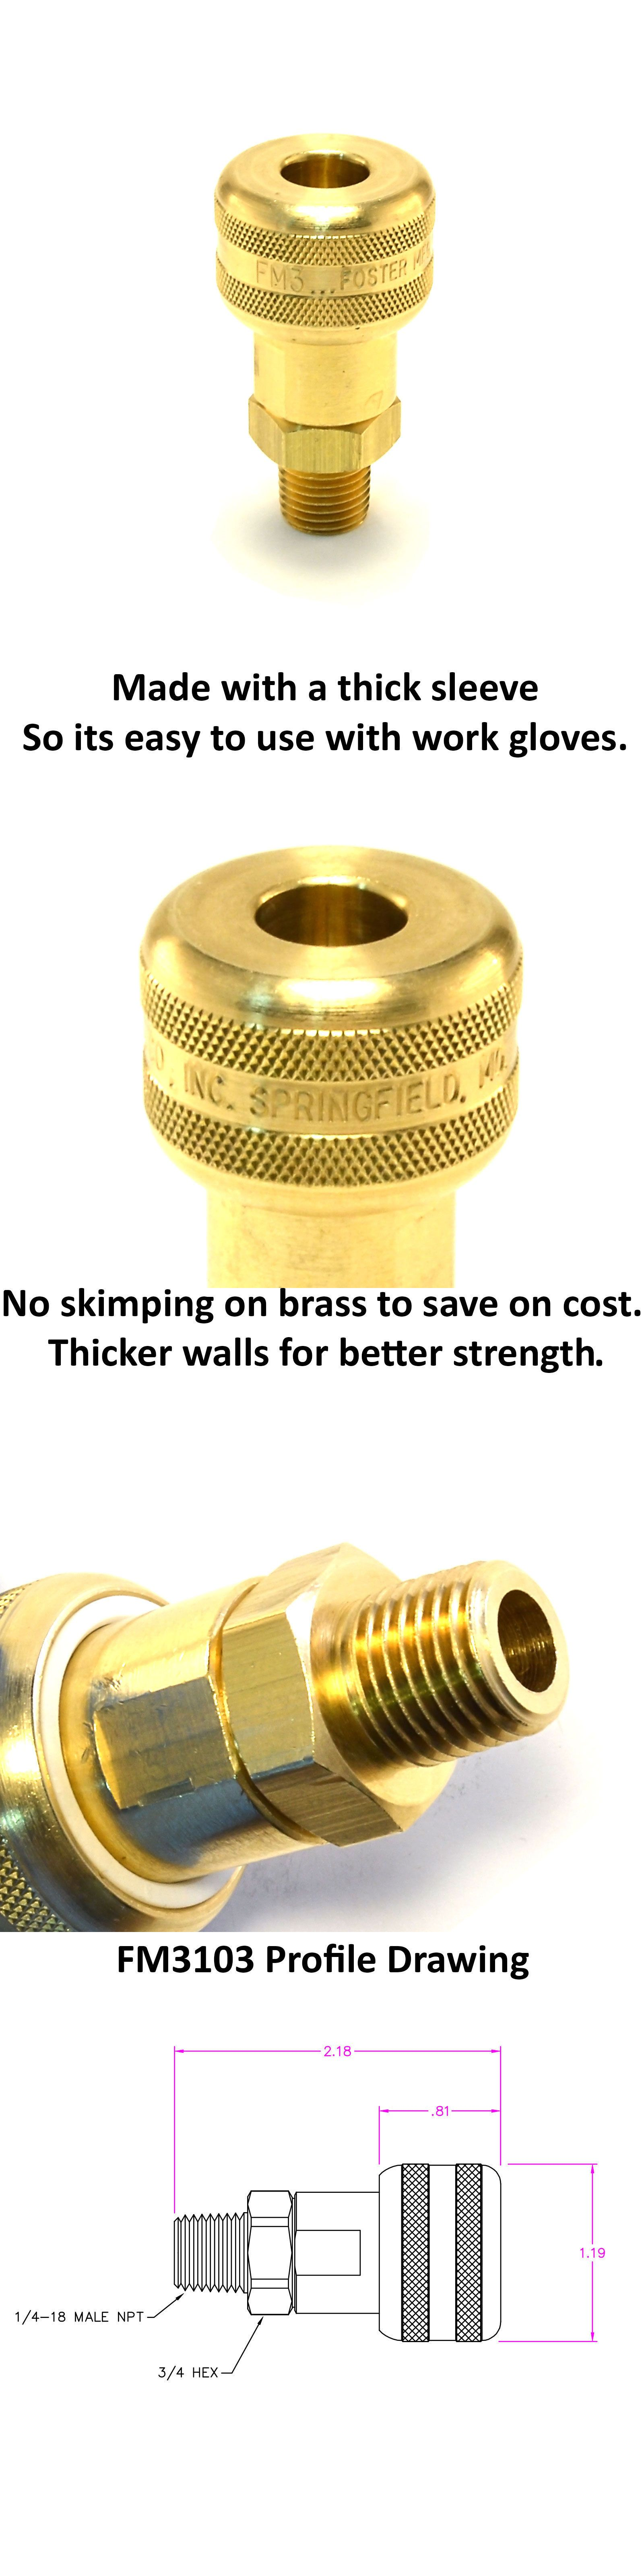 Air Tools 42340 1 4 Male Npt 1 4 Quick Connect Coupler Brass Air Hose Fittings M Mil Buy It Now Only 11 45 On Ebay Tools With Images Air Tools Air Hose Work Gloves